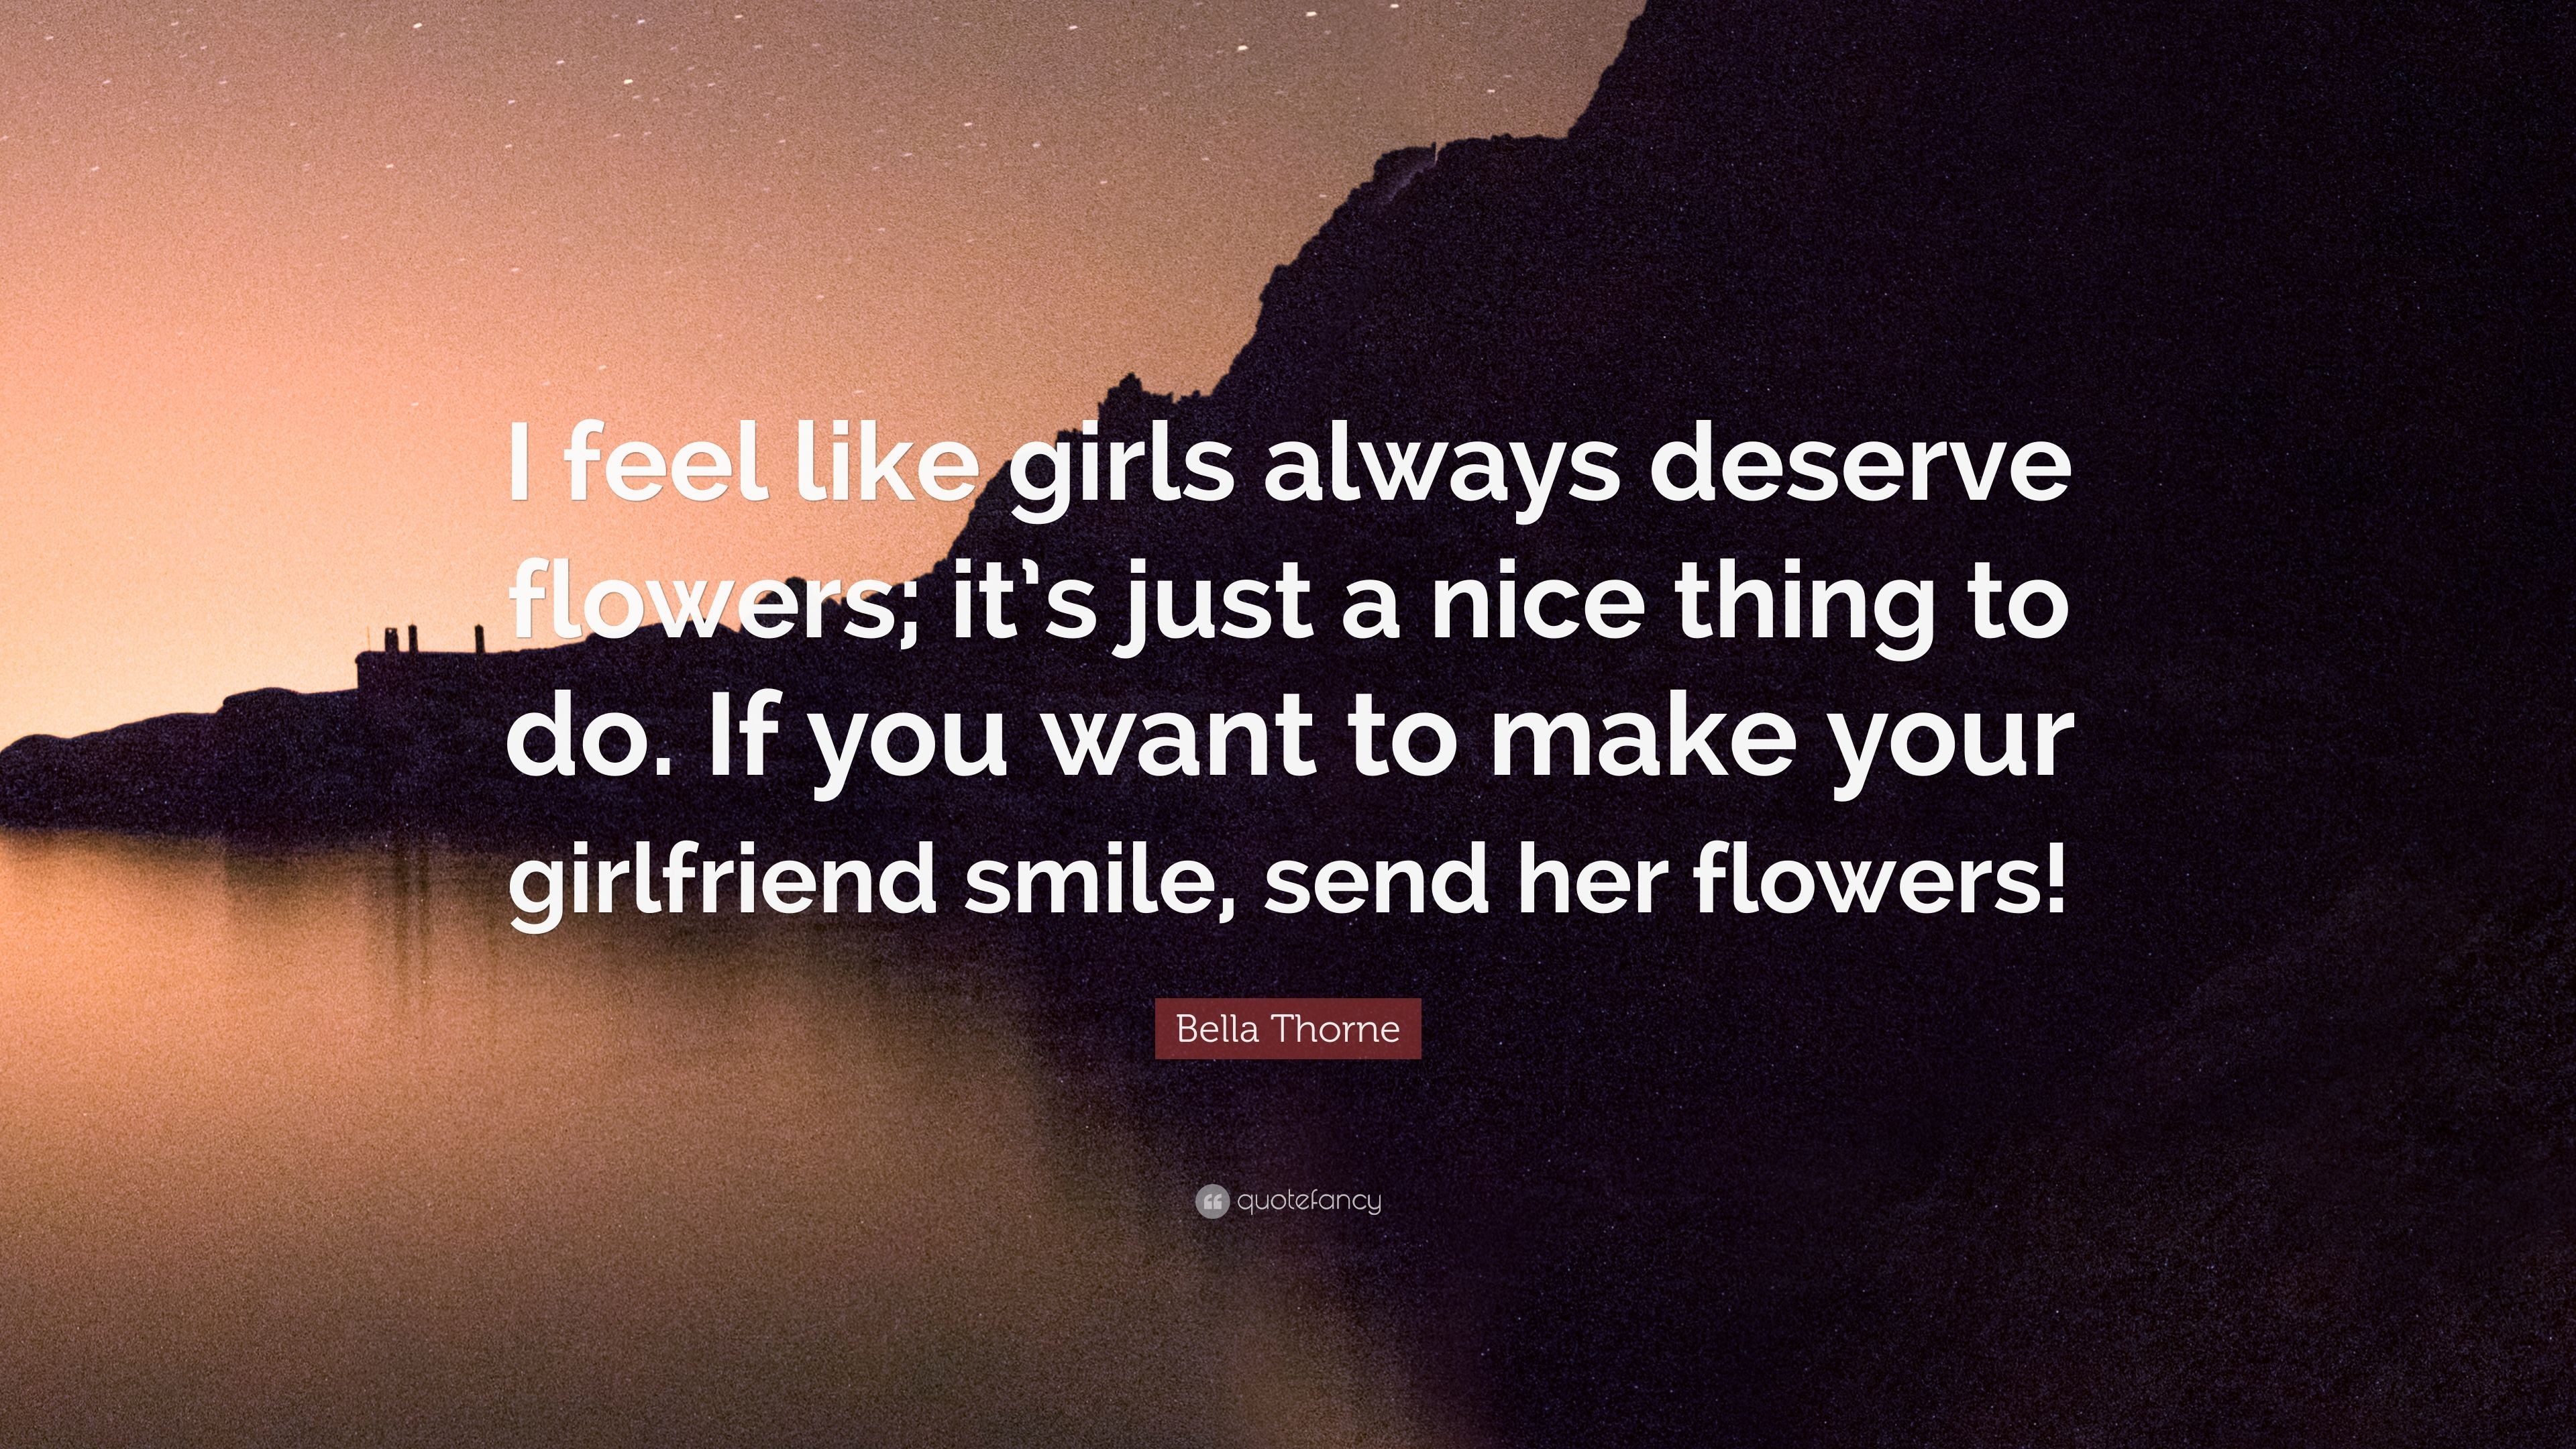 Things to make your girlfriend smile